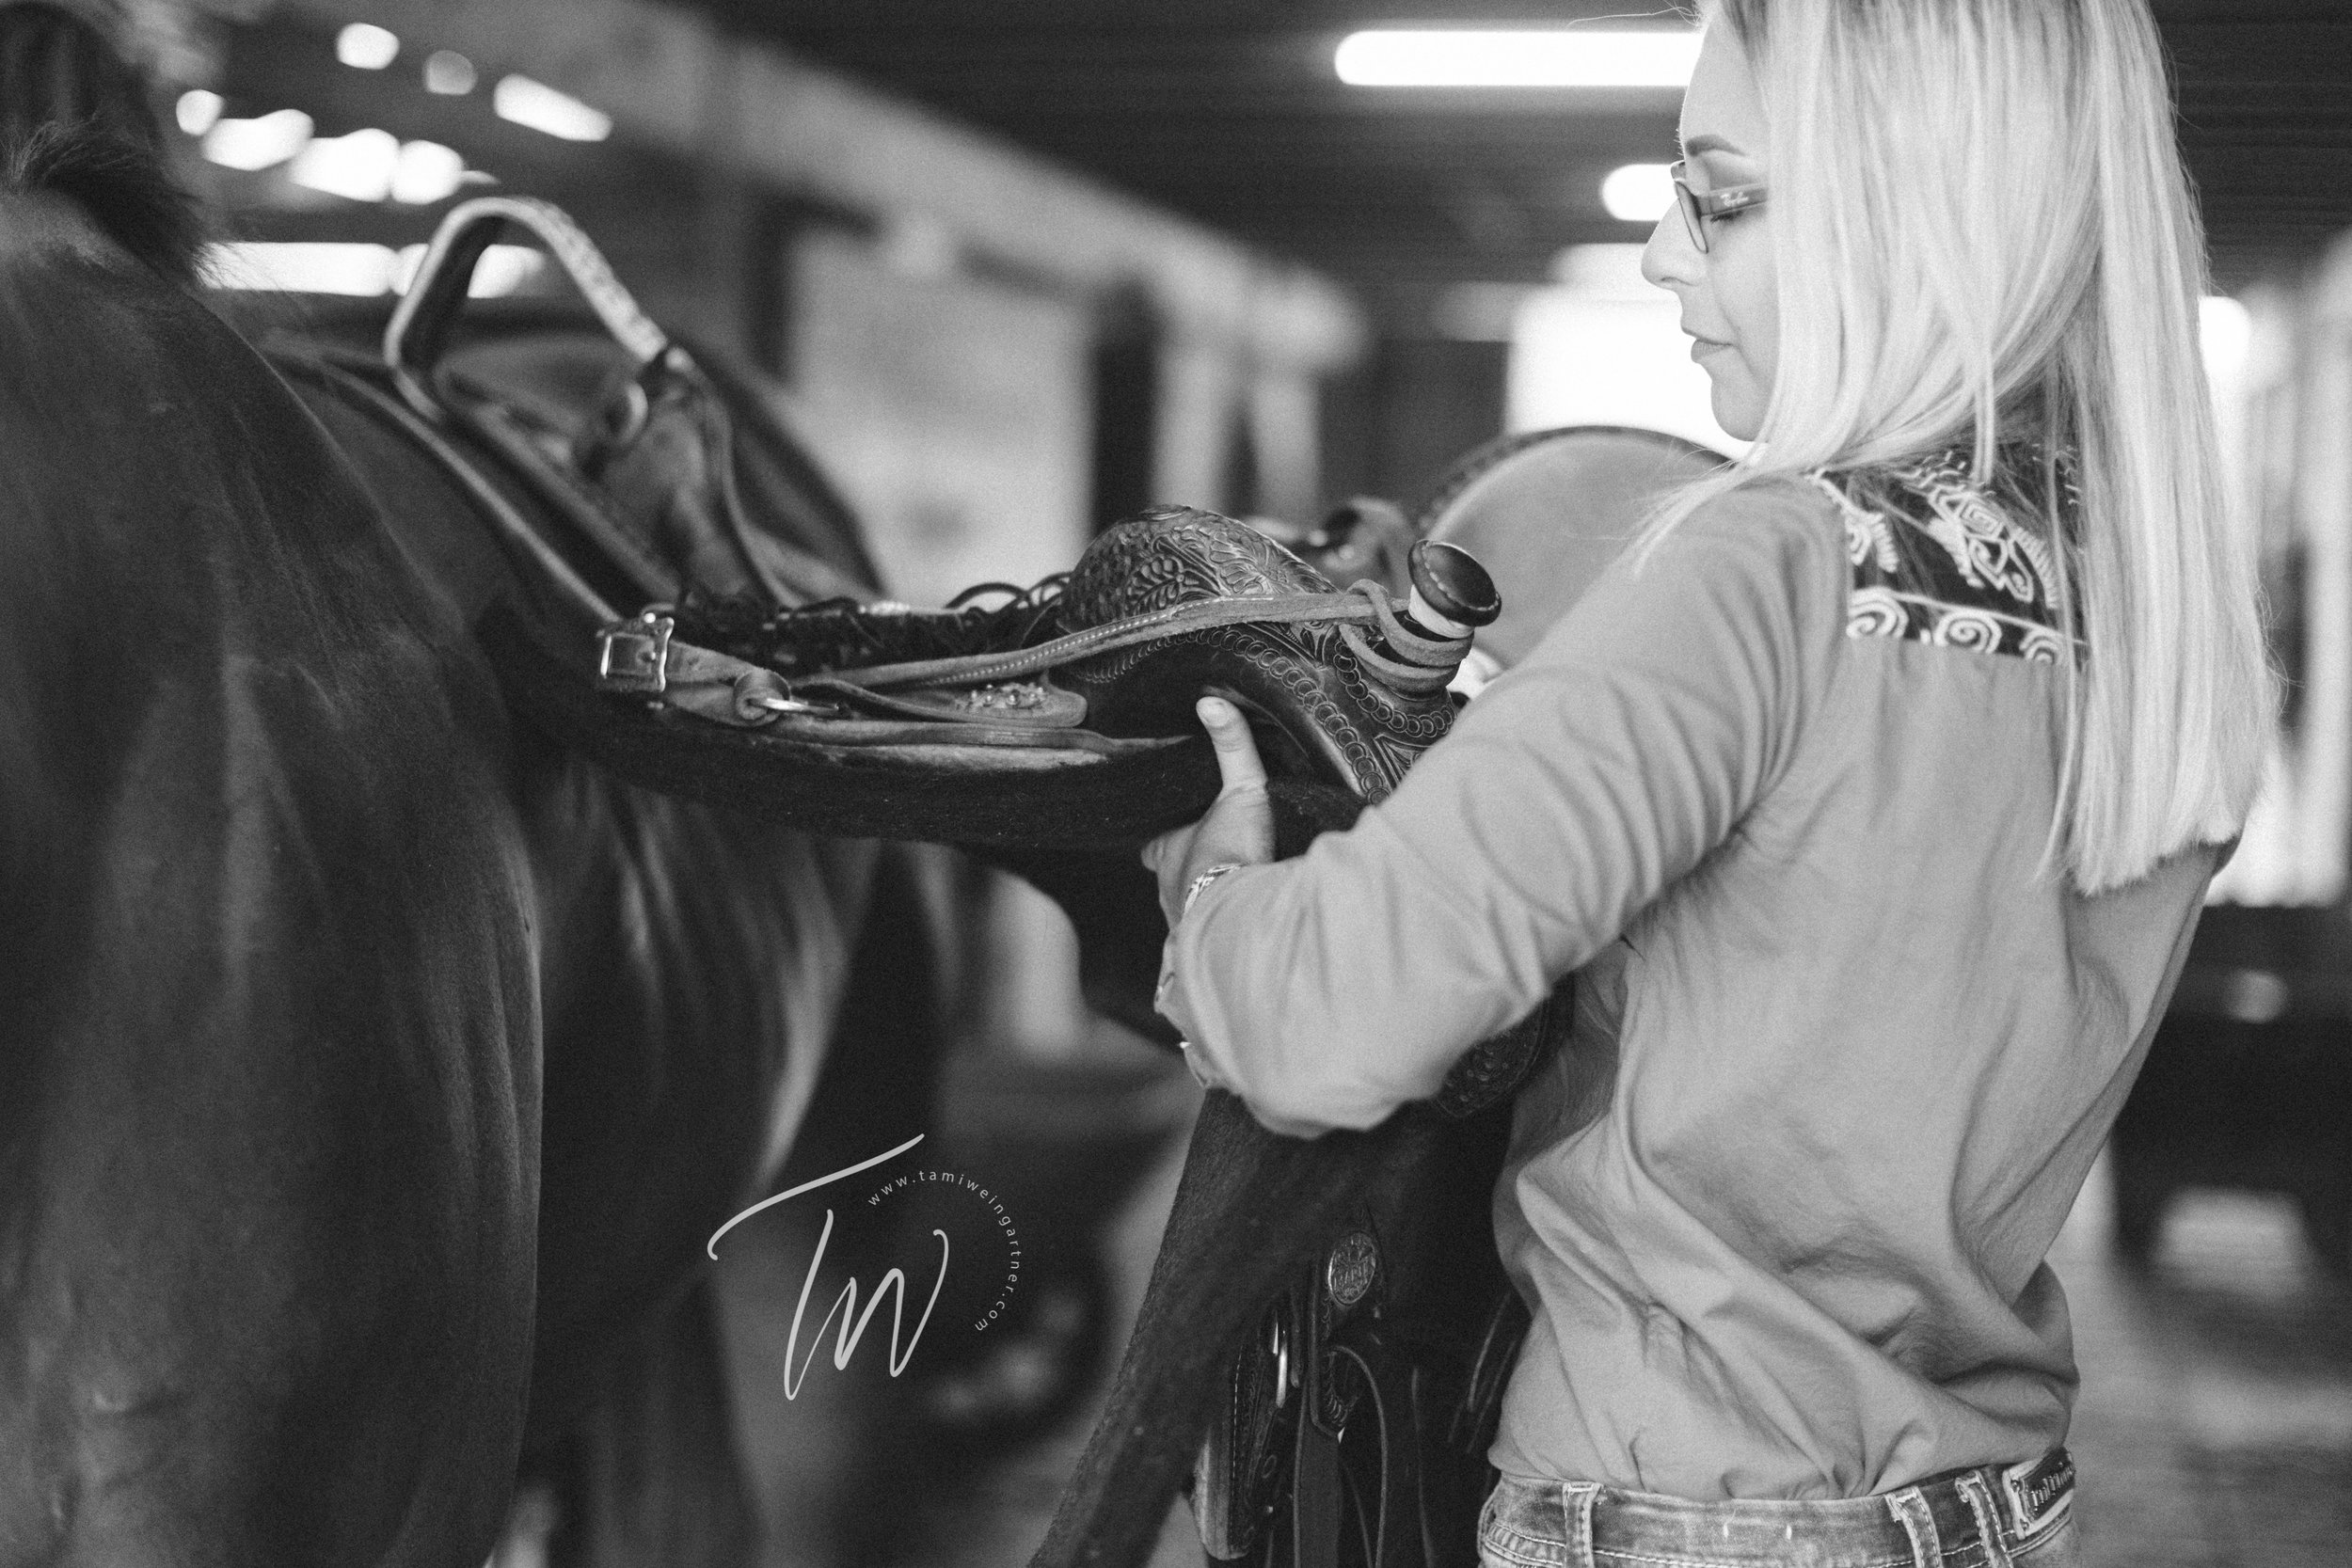 Unsaddling of barrel horse in a barn aisle by blonde horsewoman